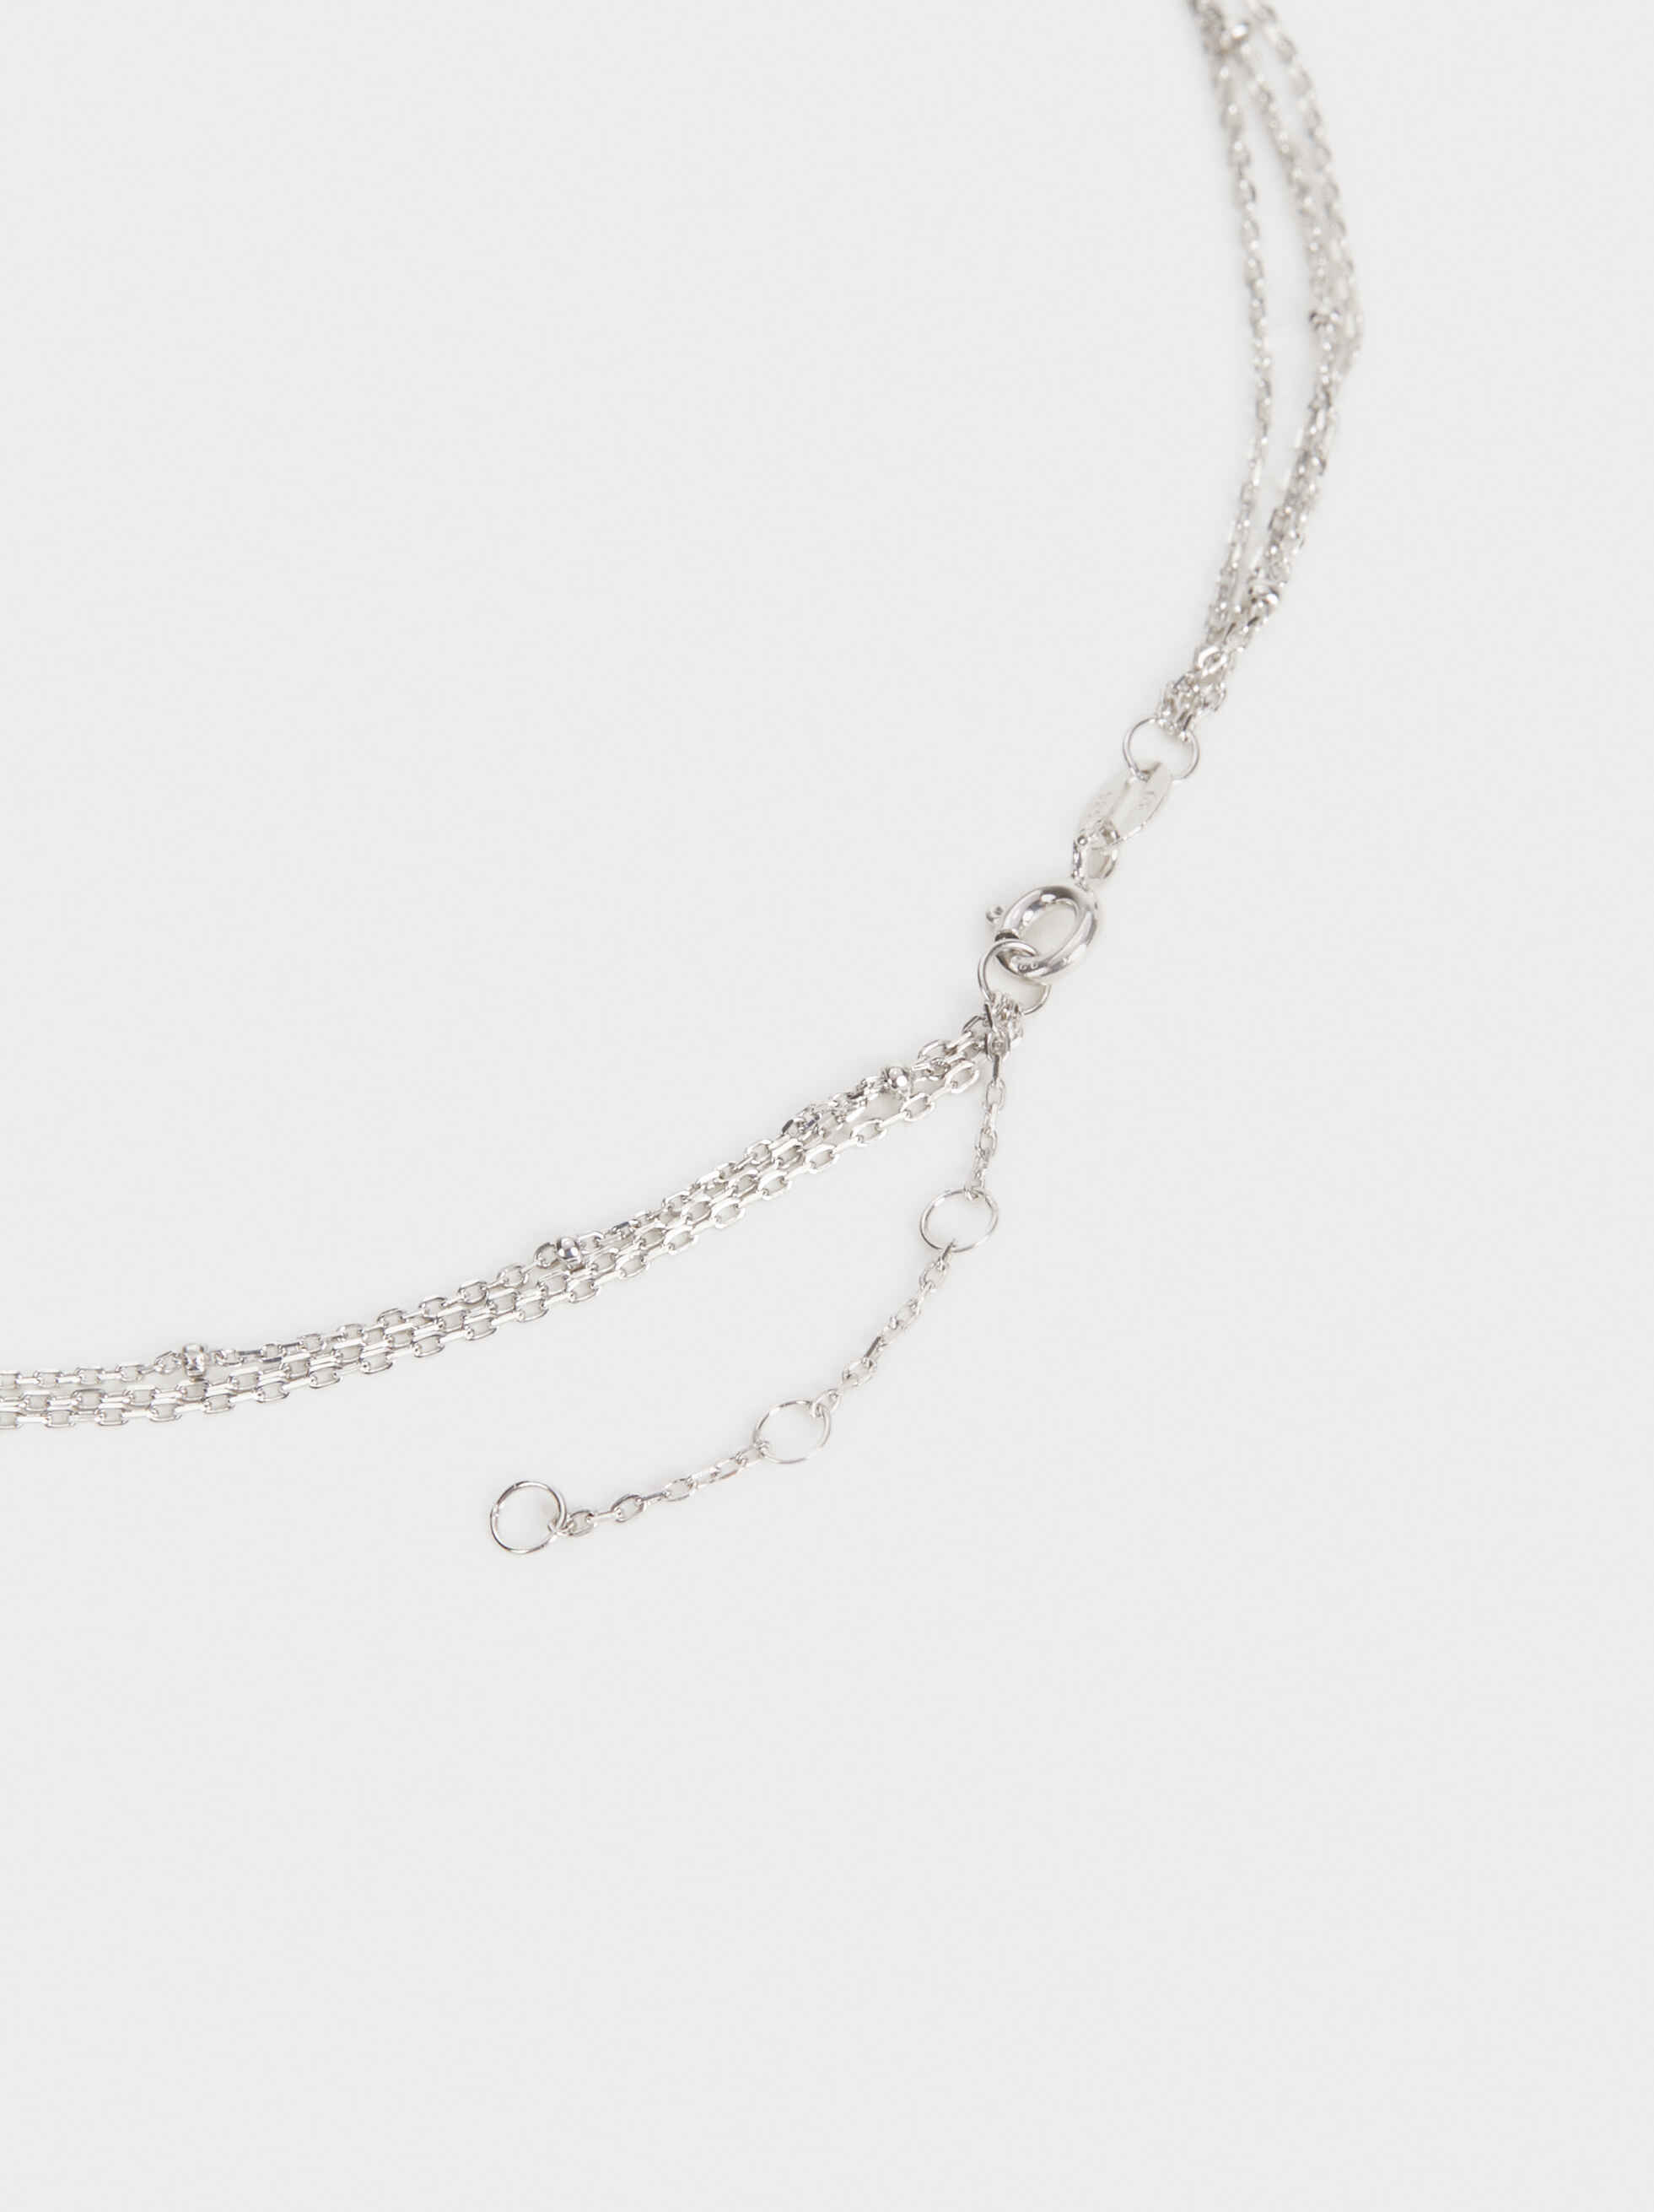 Triple-Strand 925 Silver Necklace With Pendants, Silver, hi-res